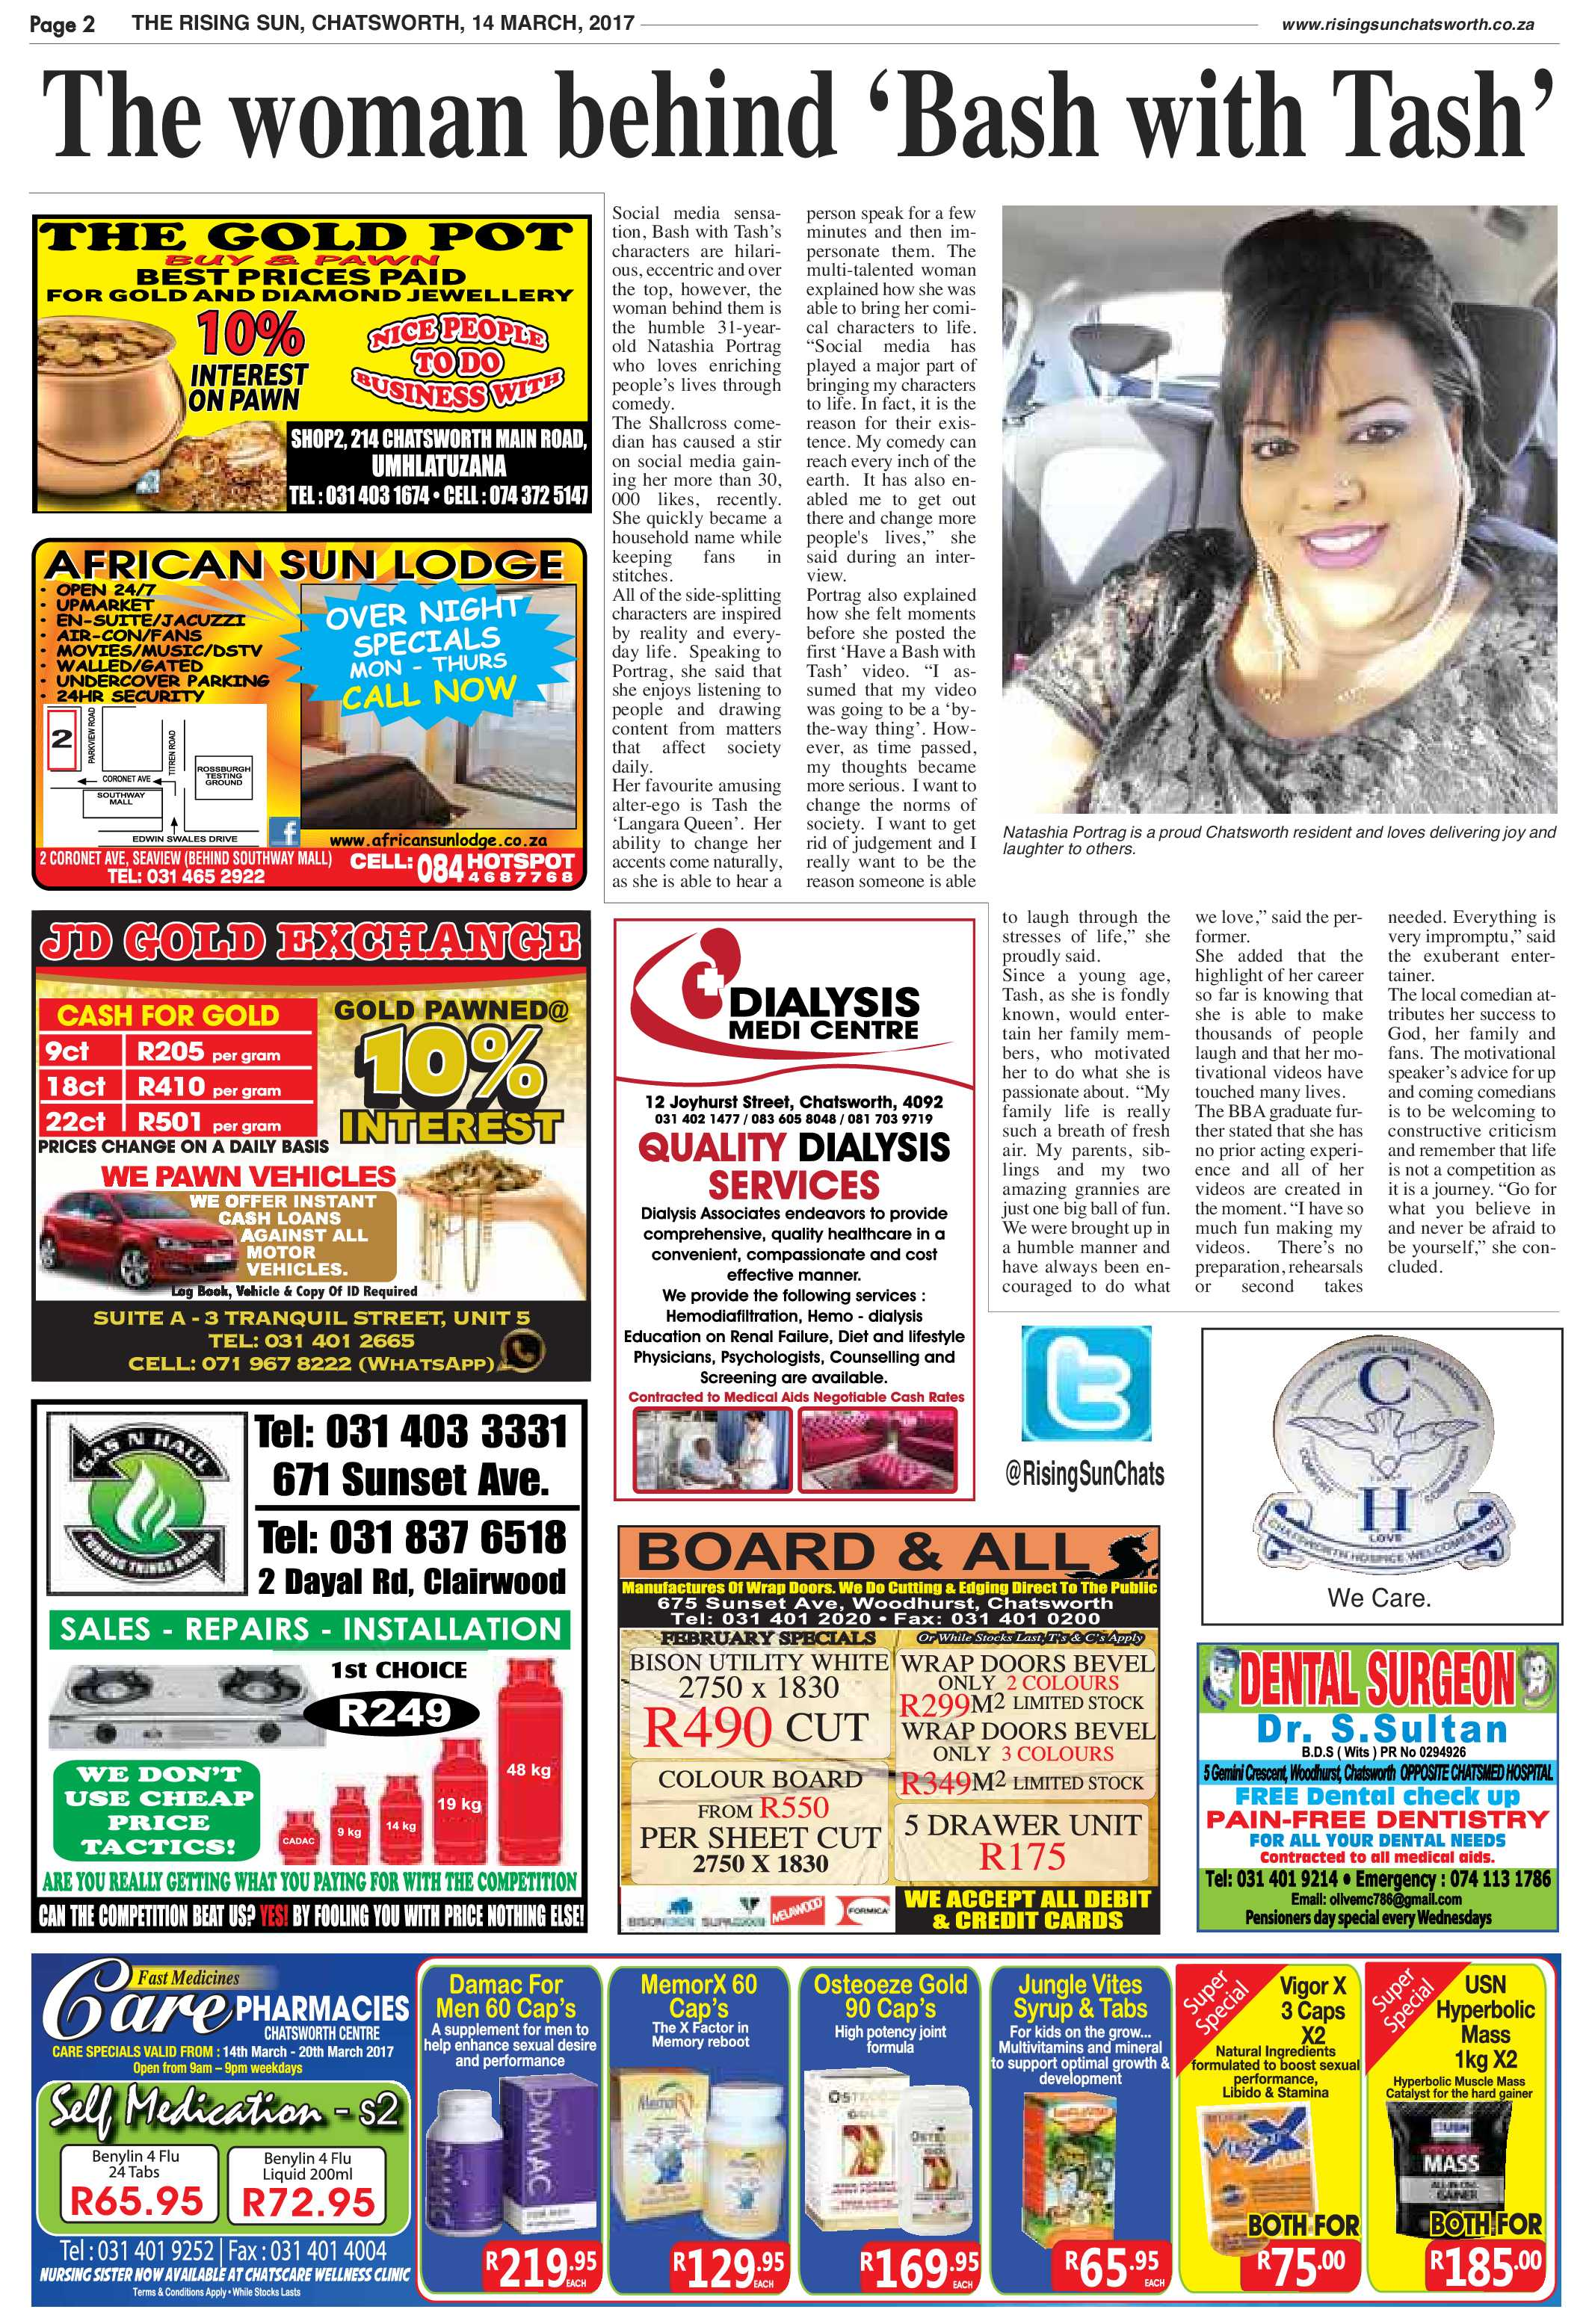 chatsworth-police-slammed-epapers-page-6